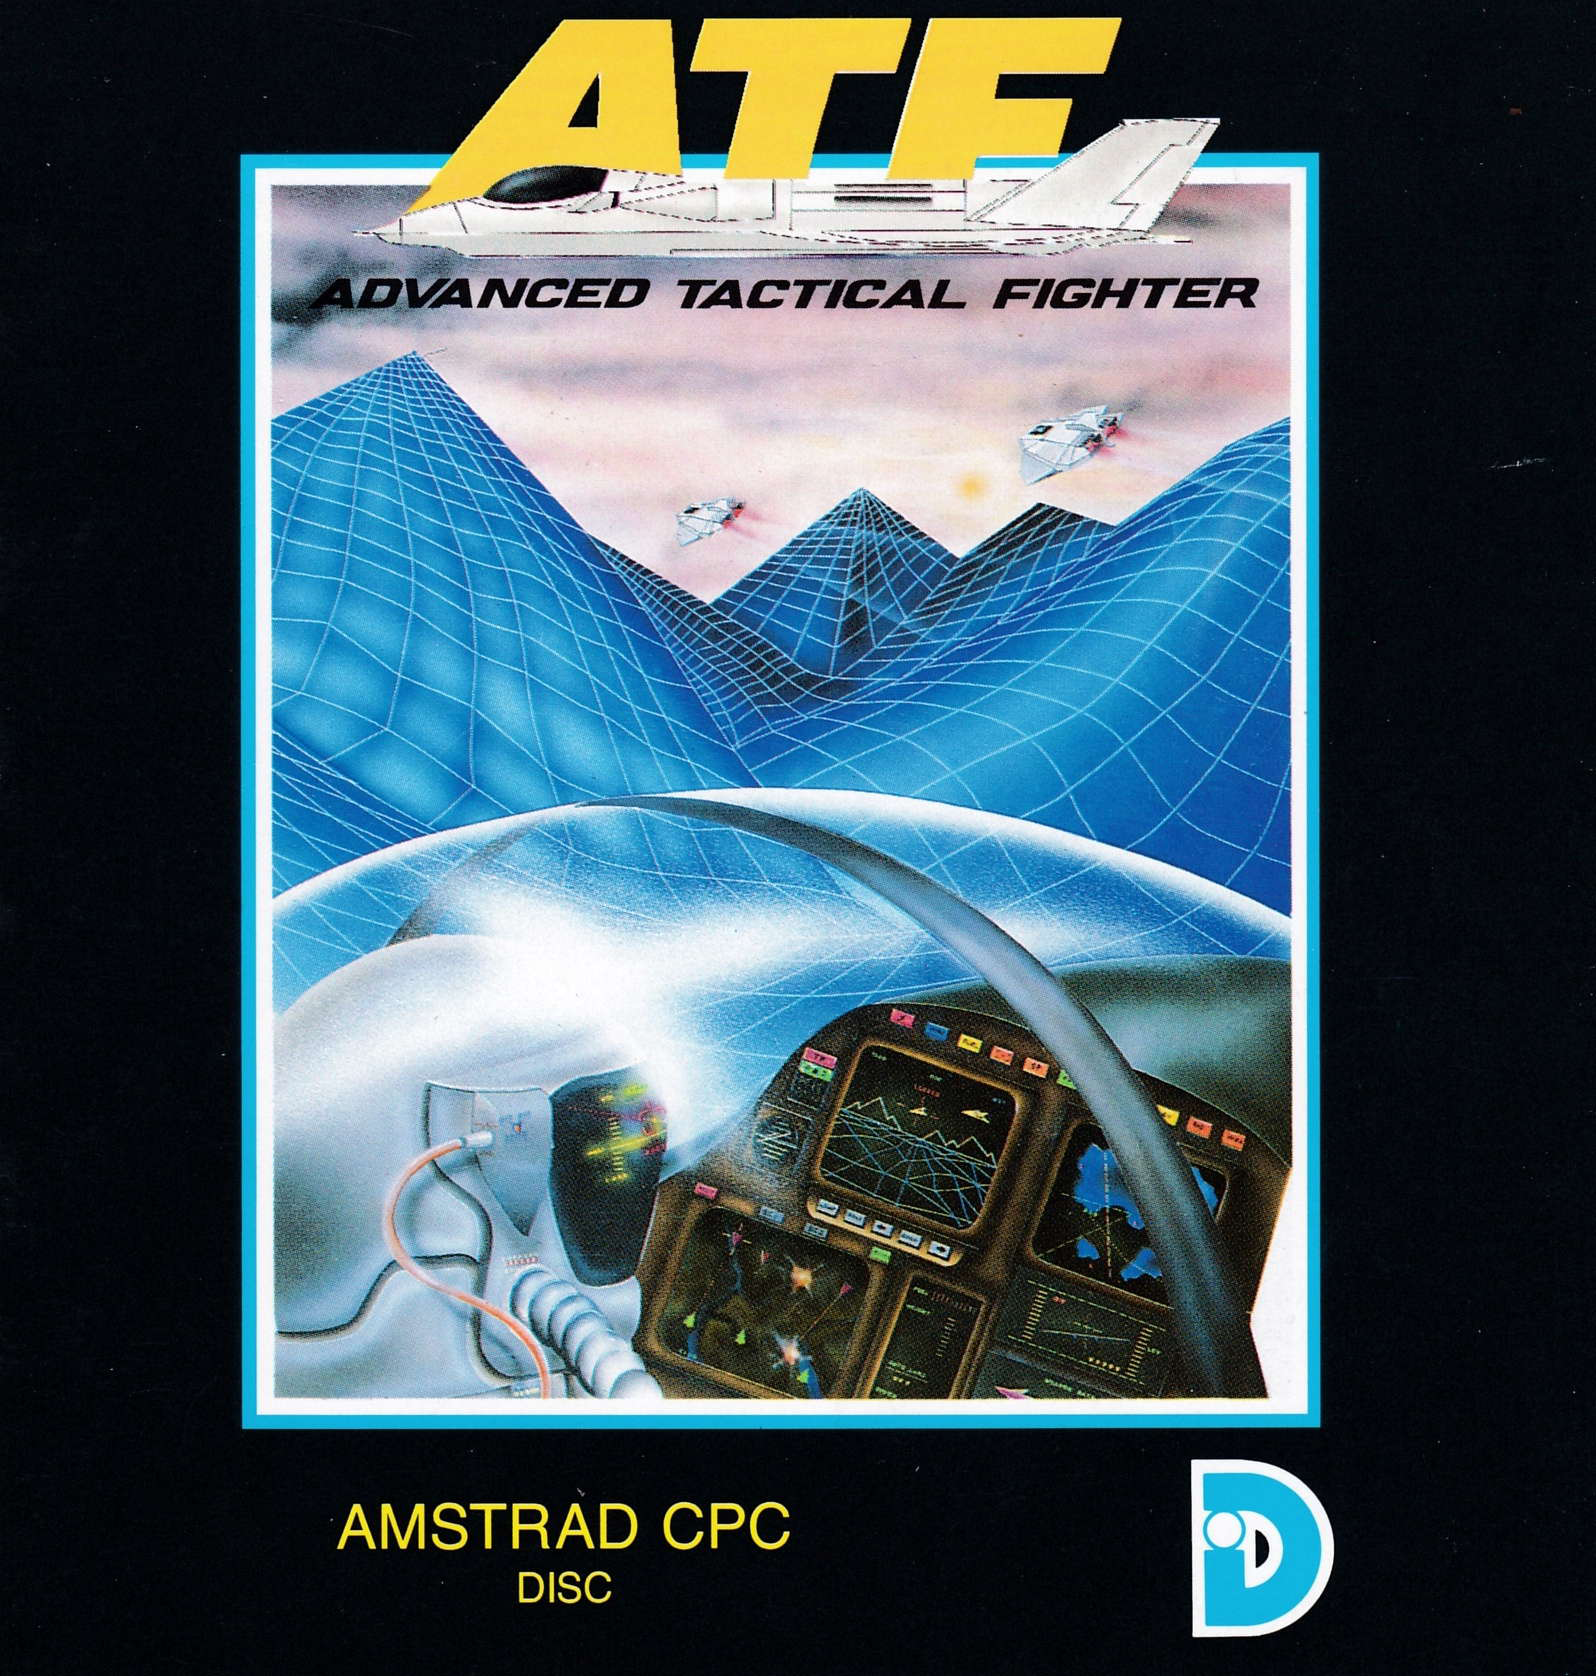 cover of the Amstrad CPC game ATF - Advanced Tactical Fighter  by GameBase CPC